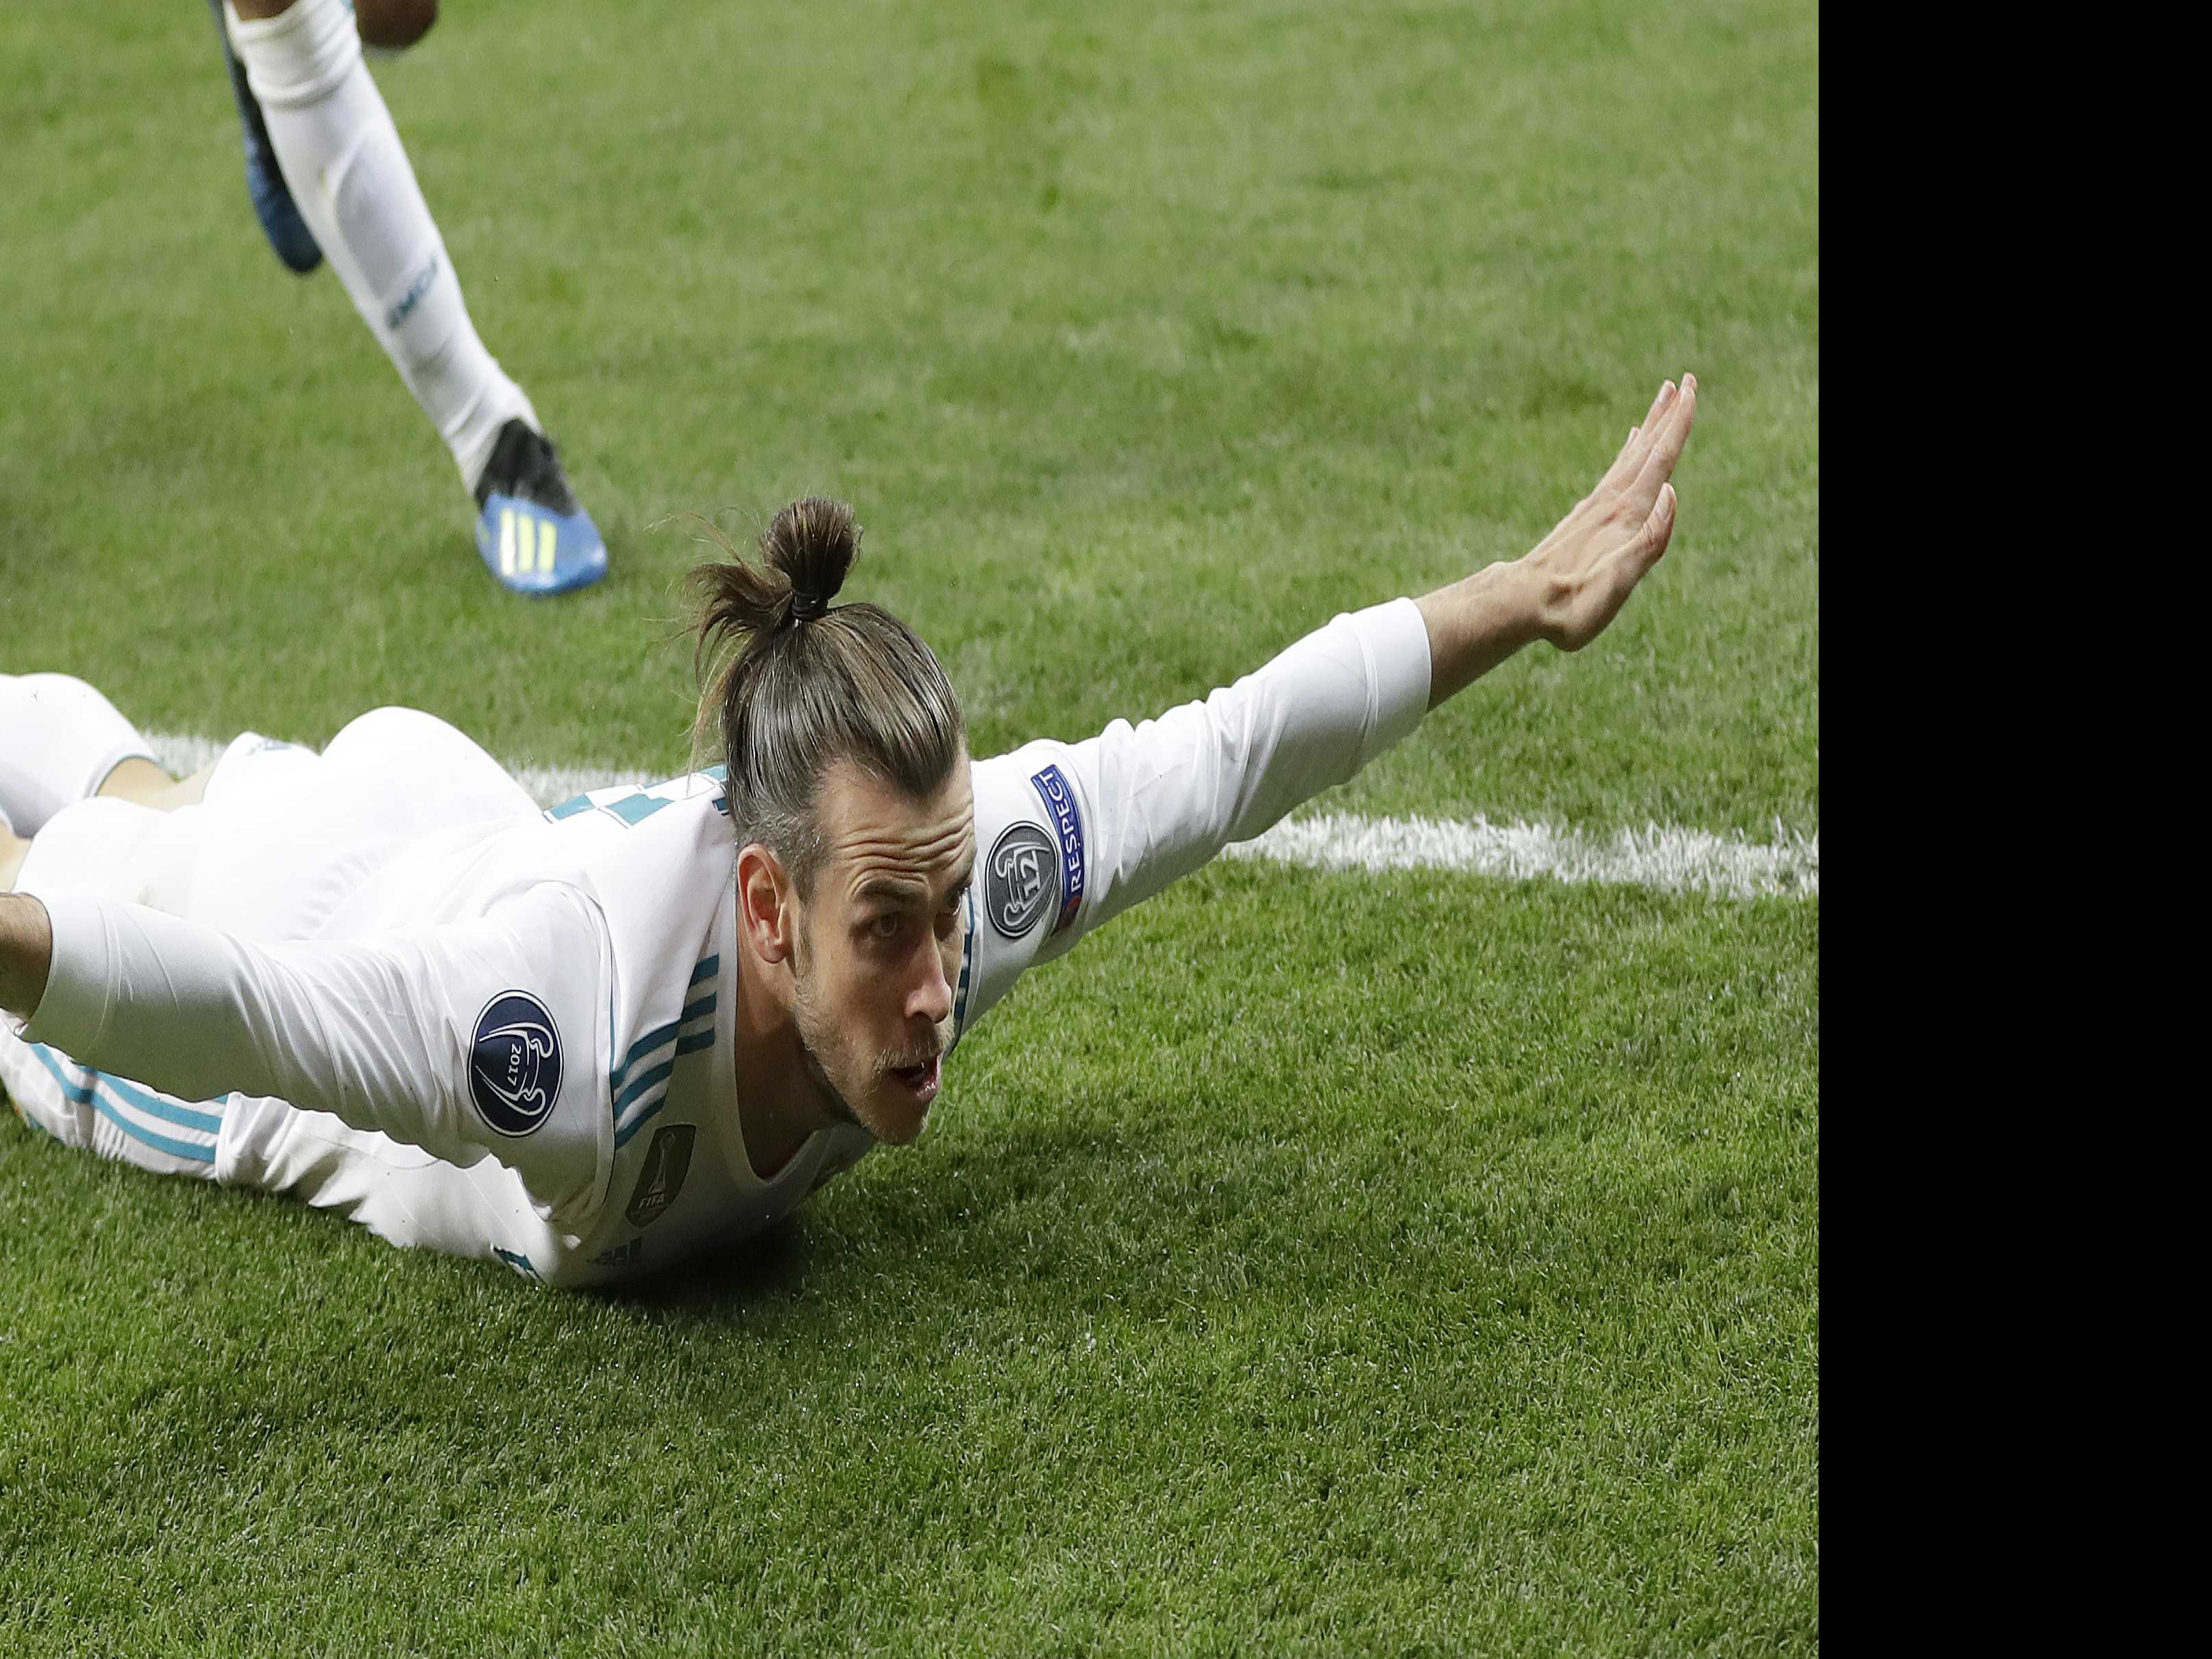 Wonder-Goal, Gaffes, Injuries as Madrid Seals CL Three-Peat AP-SOC-Champions-League-Final